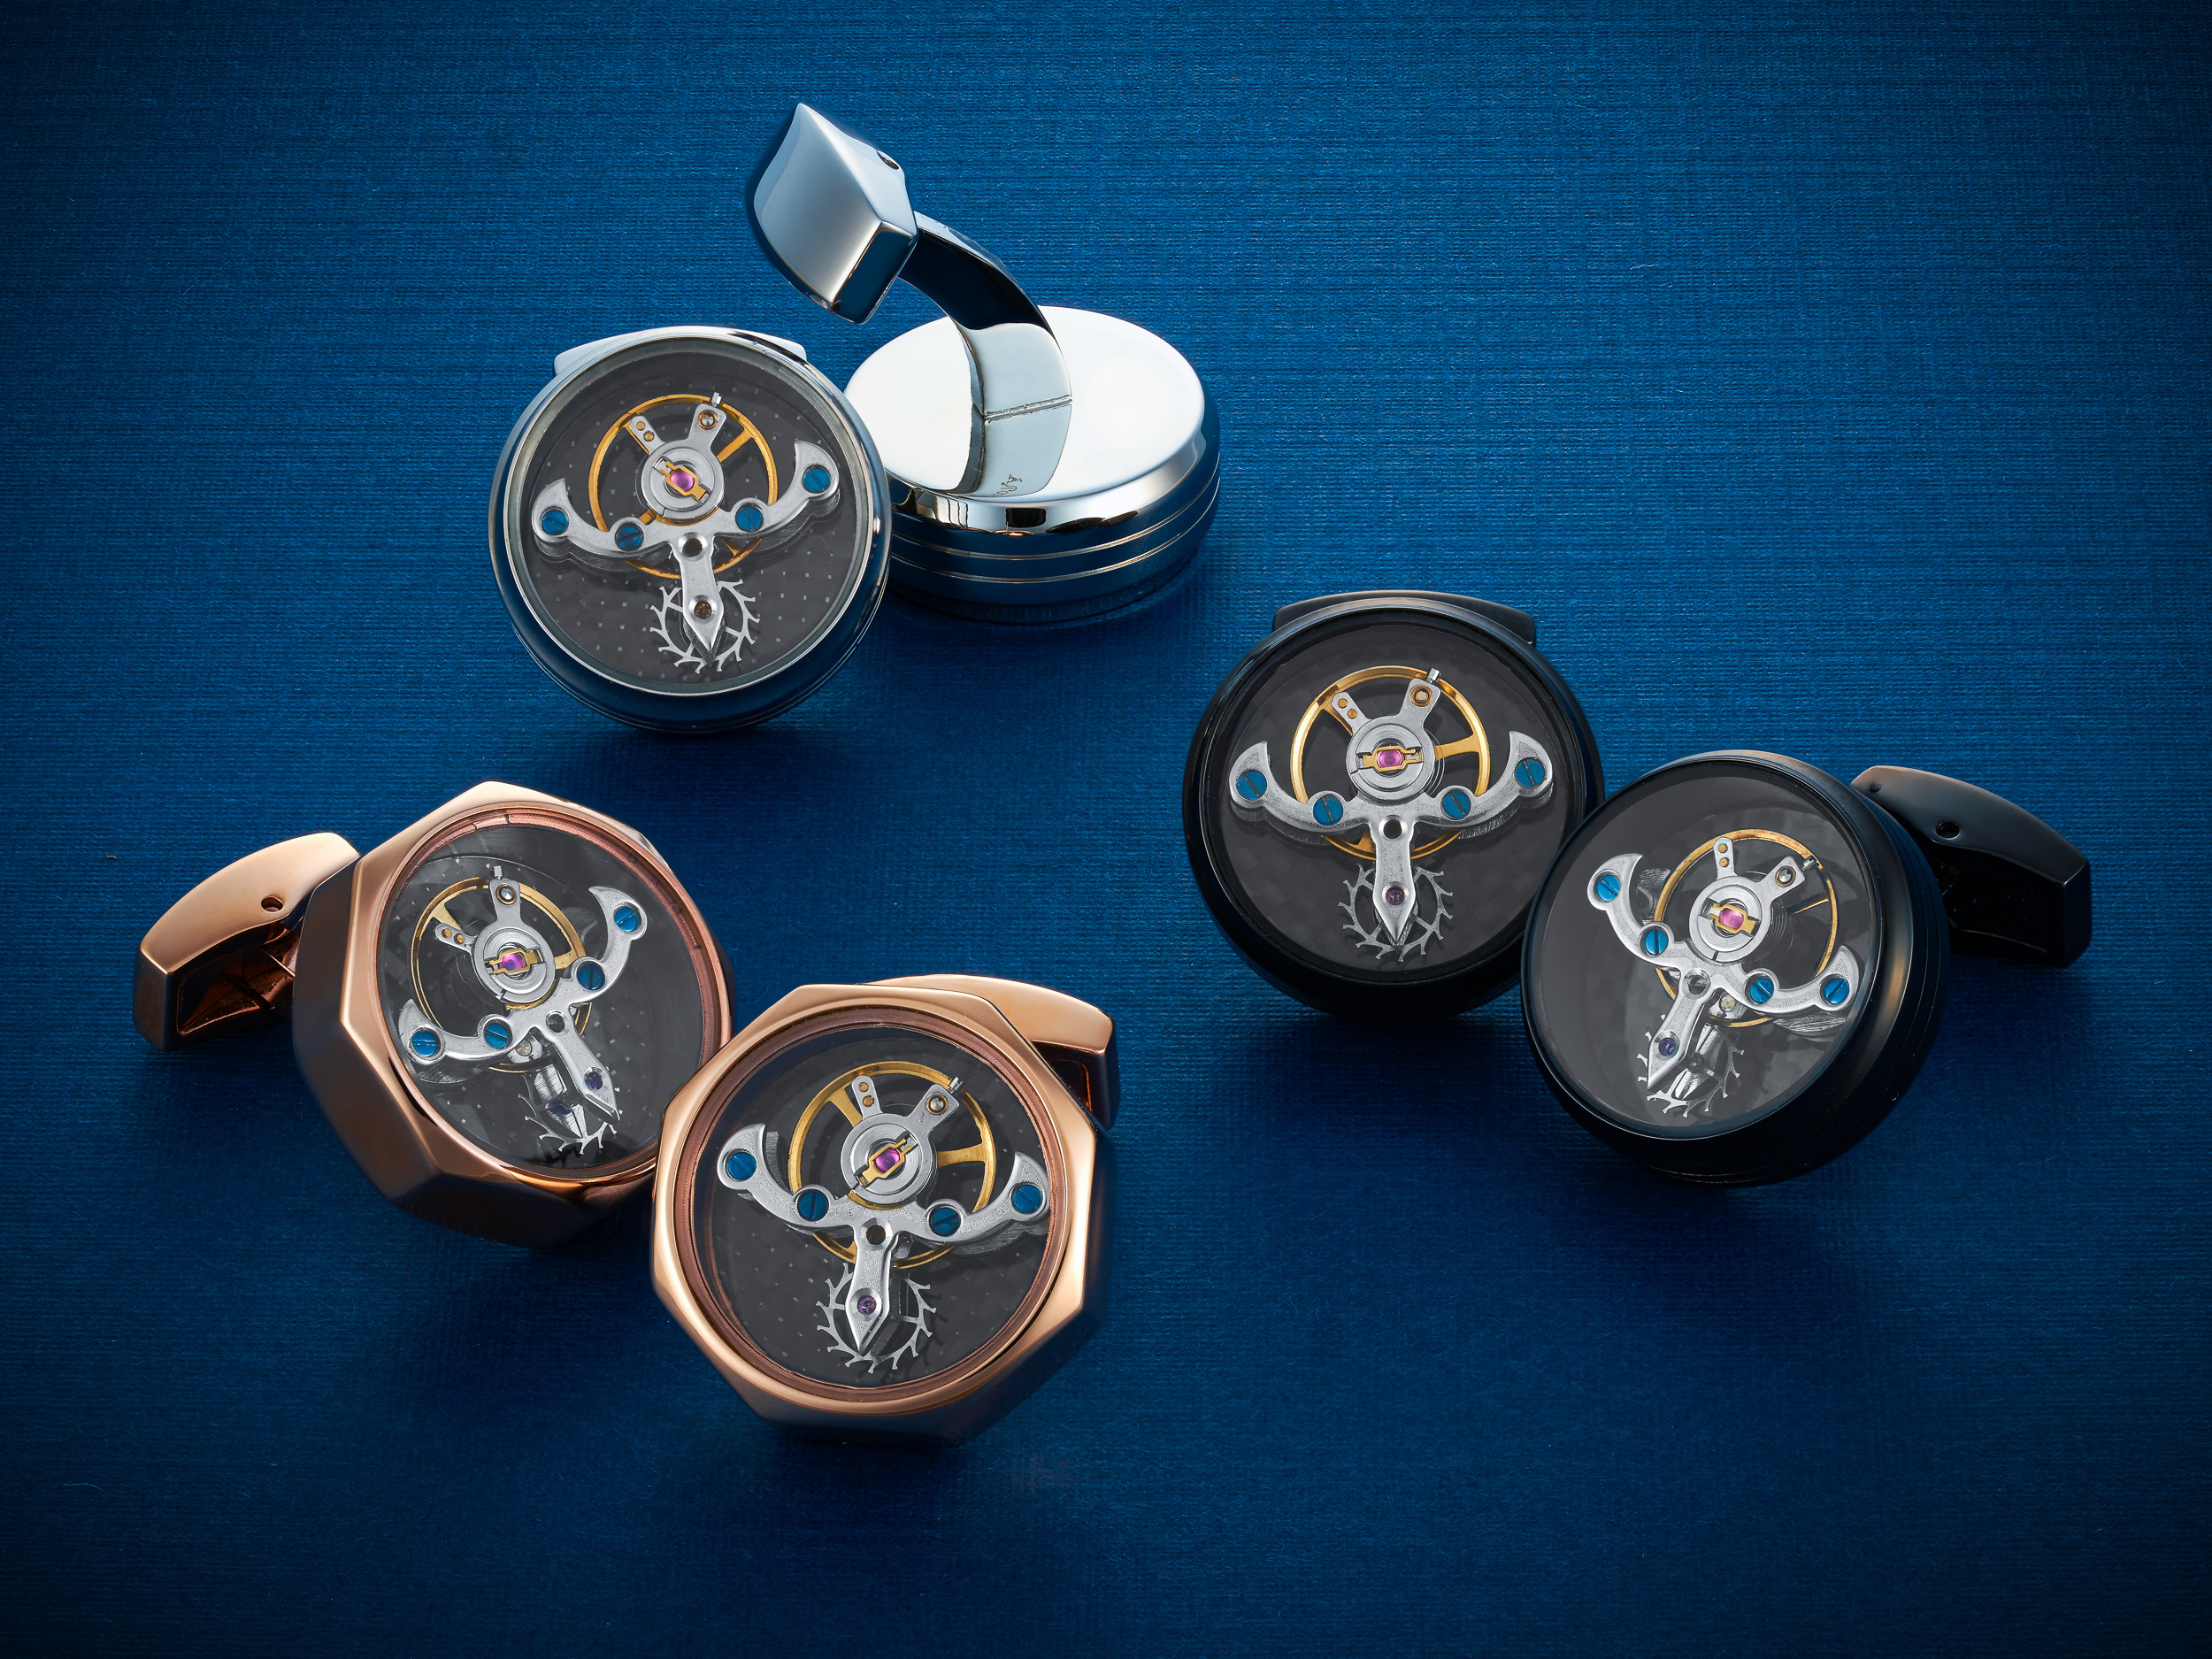 Rantora_Cufflinks_Miami_Fort Lauderdale_Commercial_Jewelry_Photographer_Franklin_Castillo.jpg